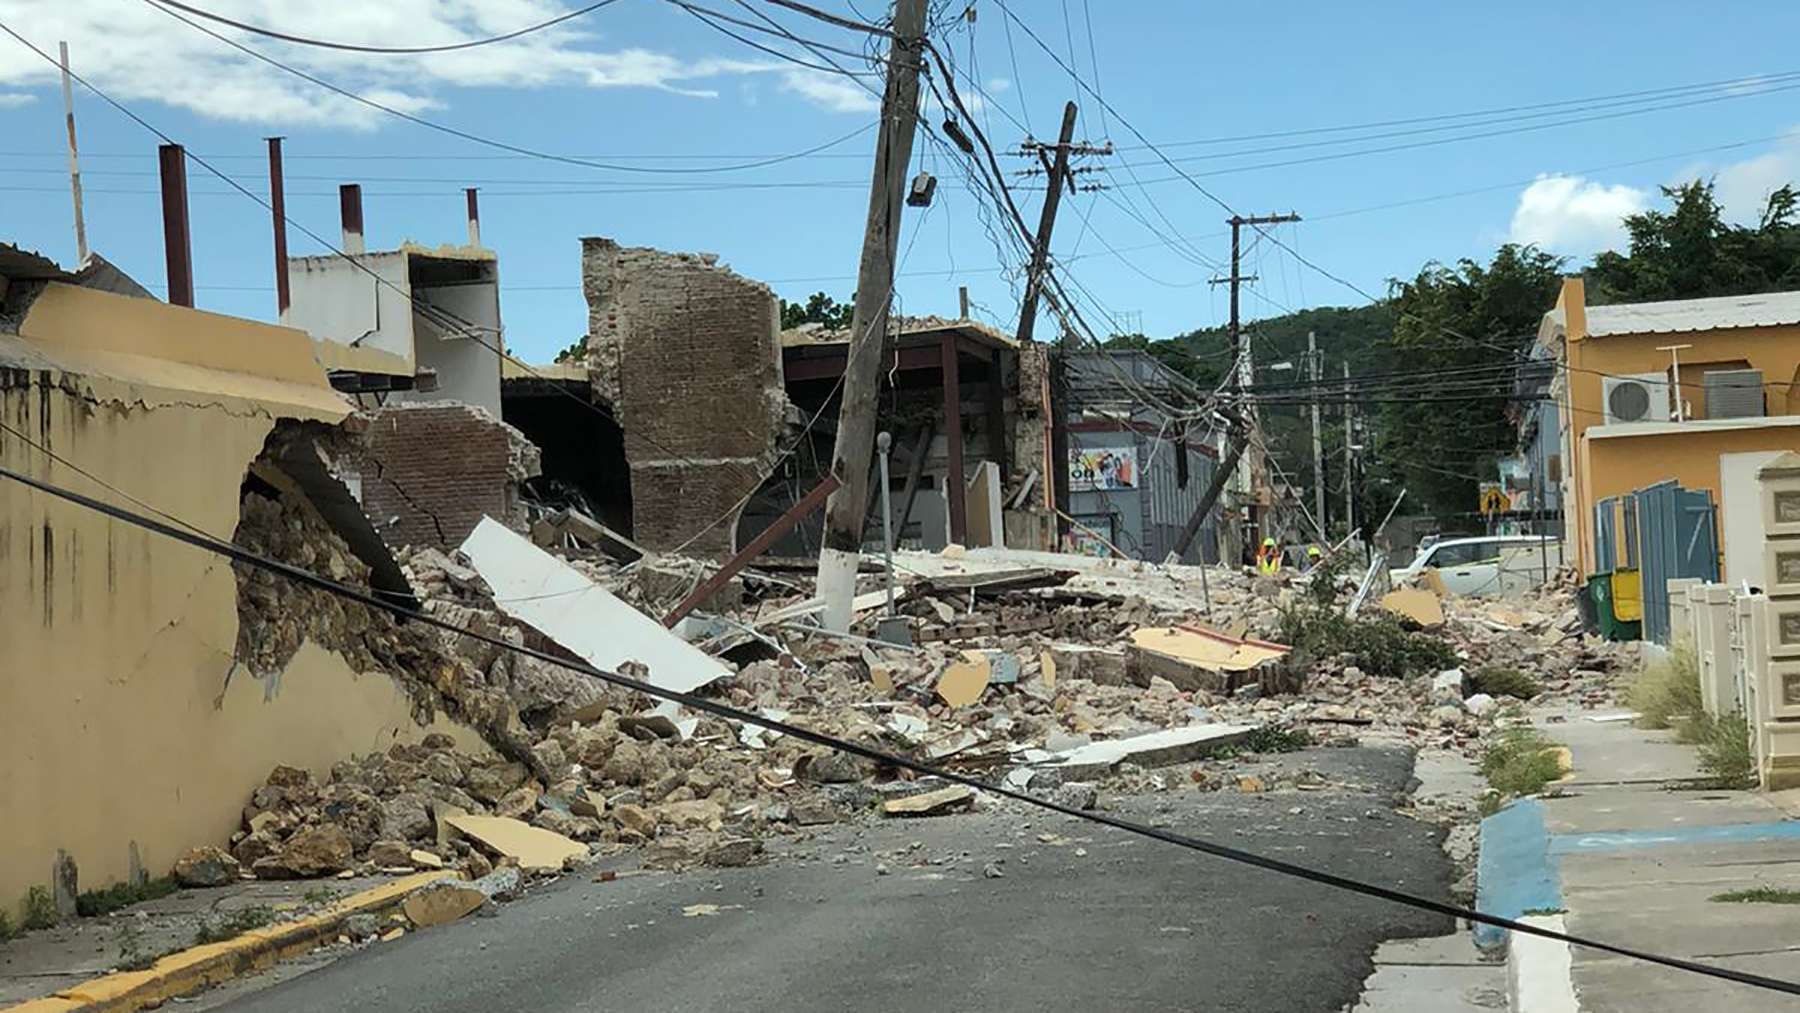 Damage from a 6.4-magnitude earthquake is seen in Guayanilla, Puerto Rico, on January 8, 2020. (Direct Relief photo)